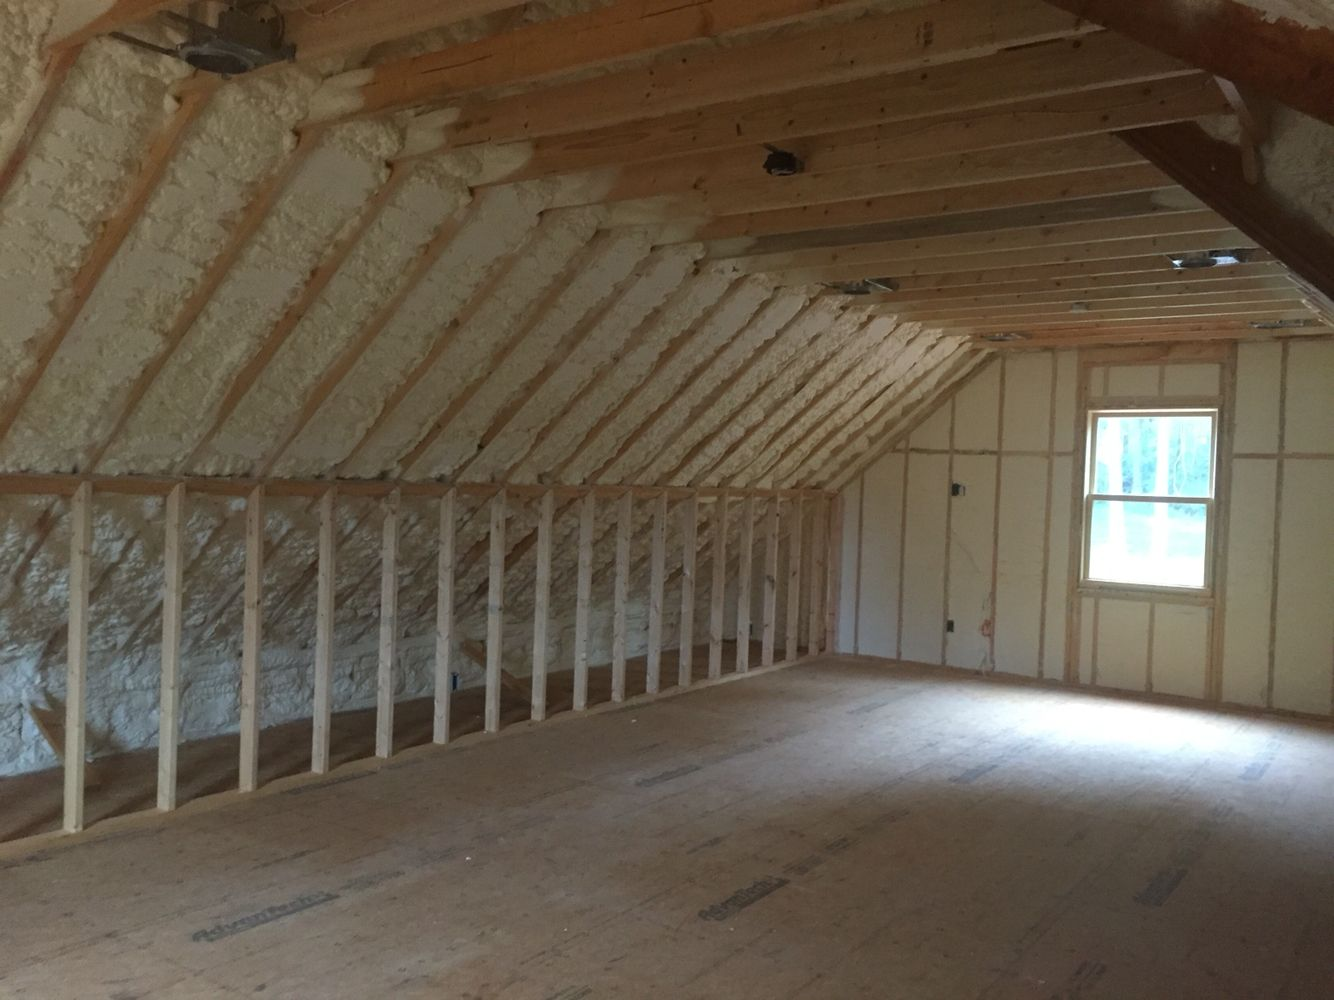 Spray foam insulation for house - Gorgeous Work Completed By Mpi Foam Using Open Cell Spray Foam Insulation Which Makes Your